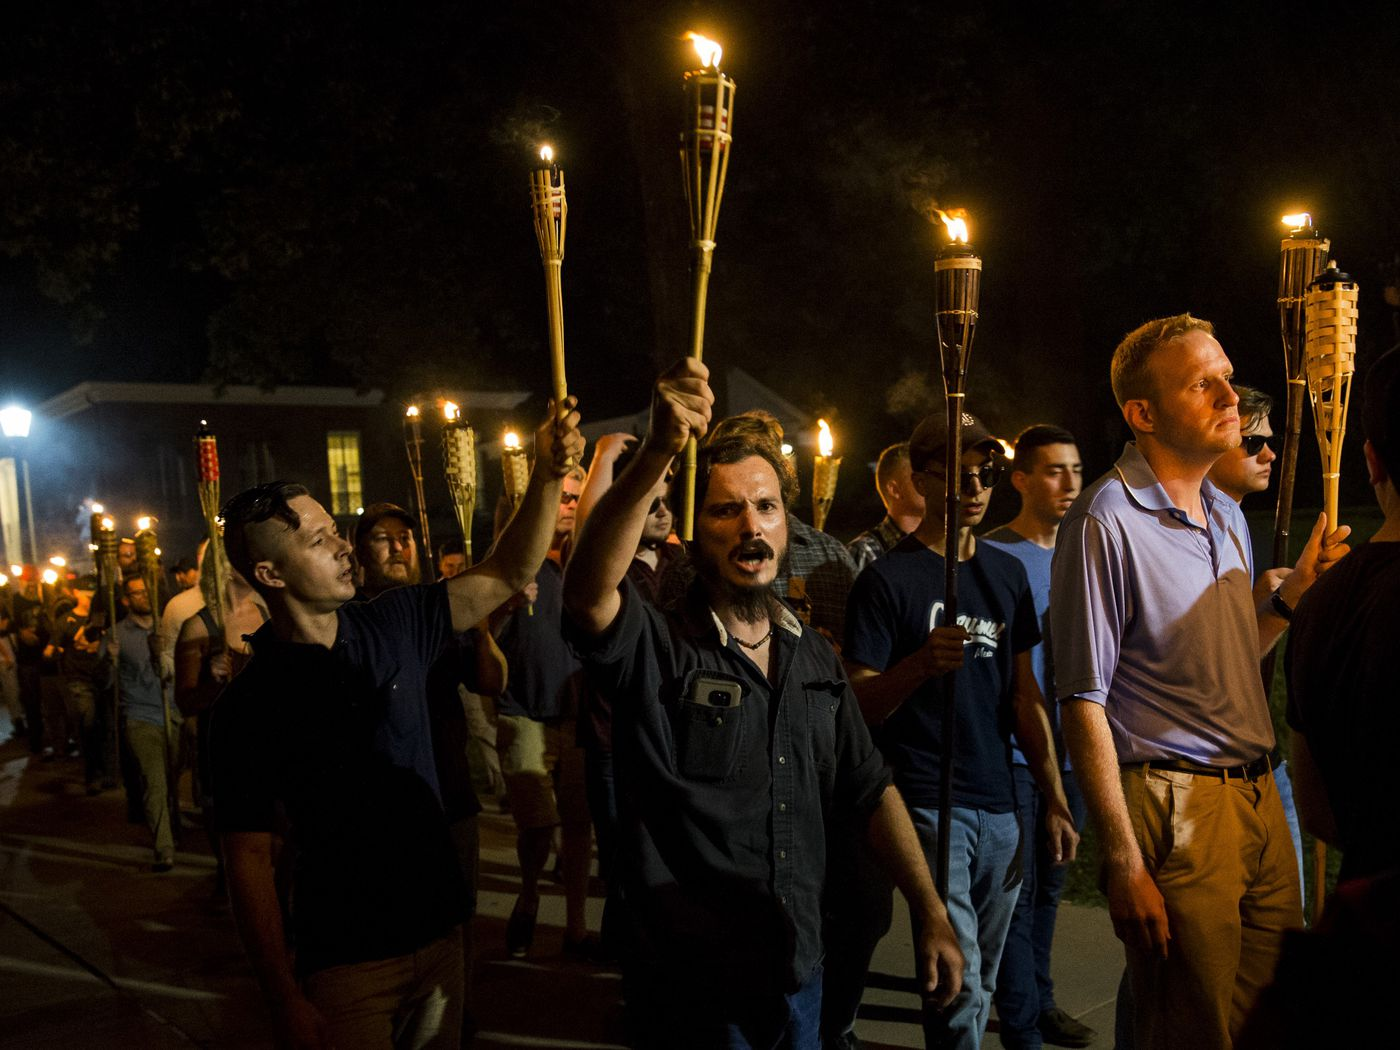 This weekend's Charlottesville rally represents an alliance between